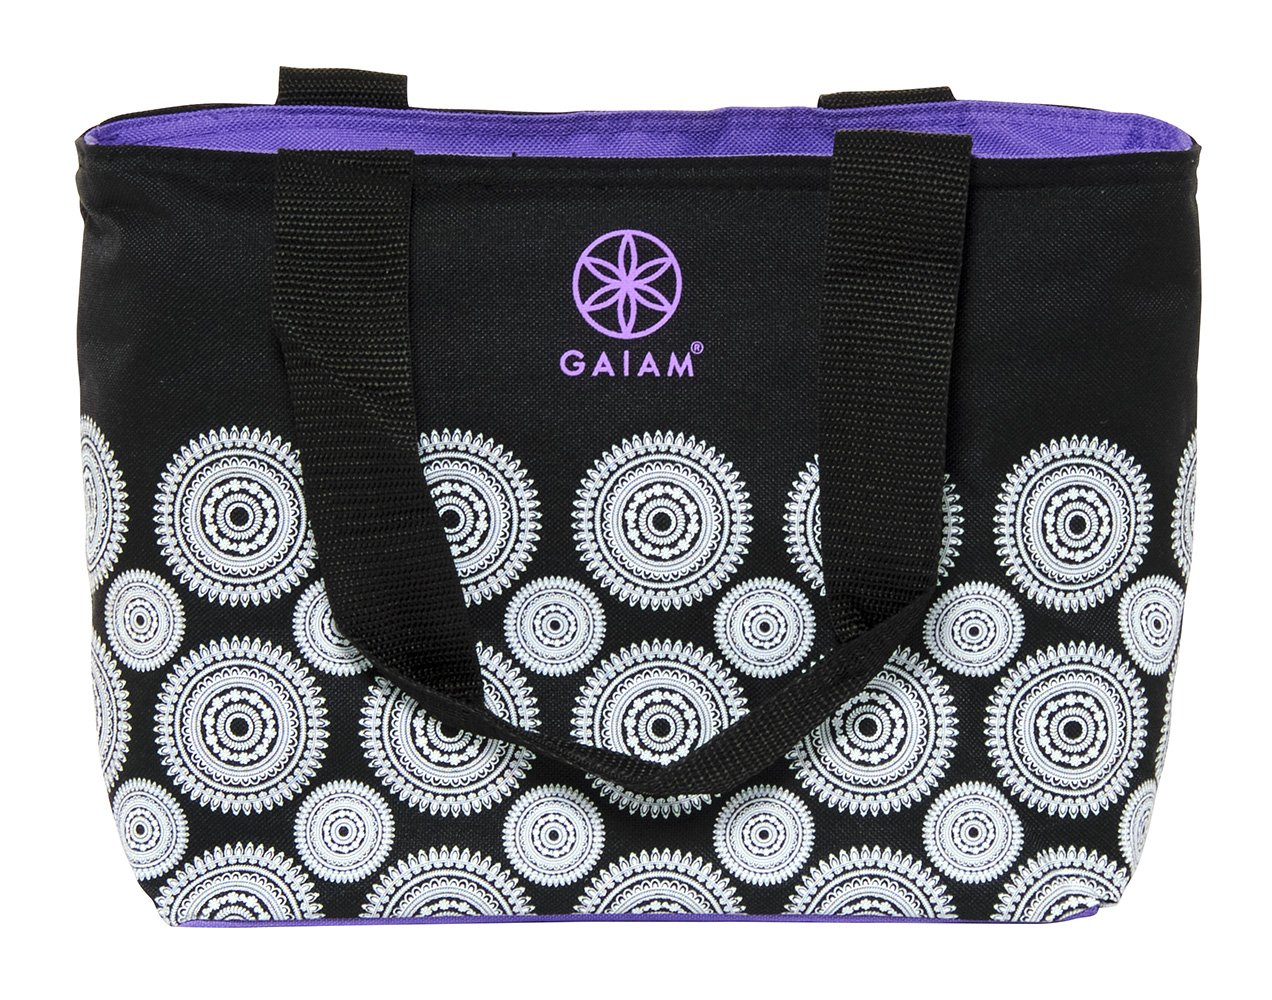 Gaiam Teatime Tote – Black Marrakesh (30896)